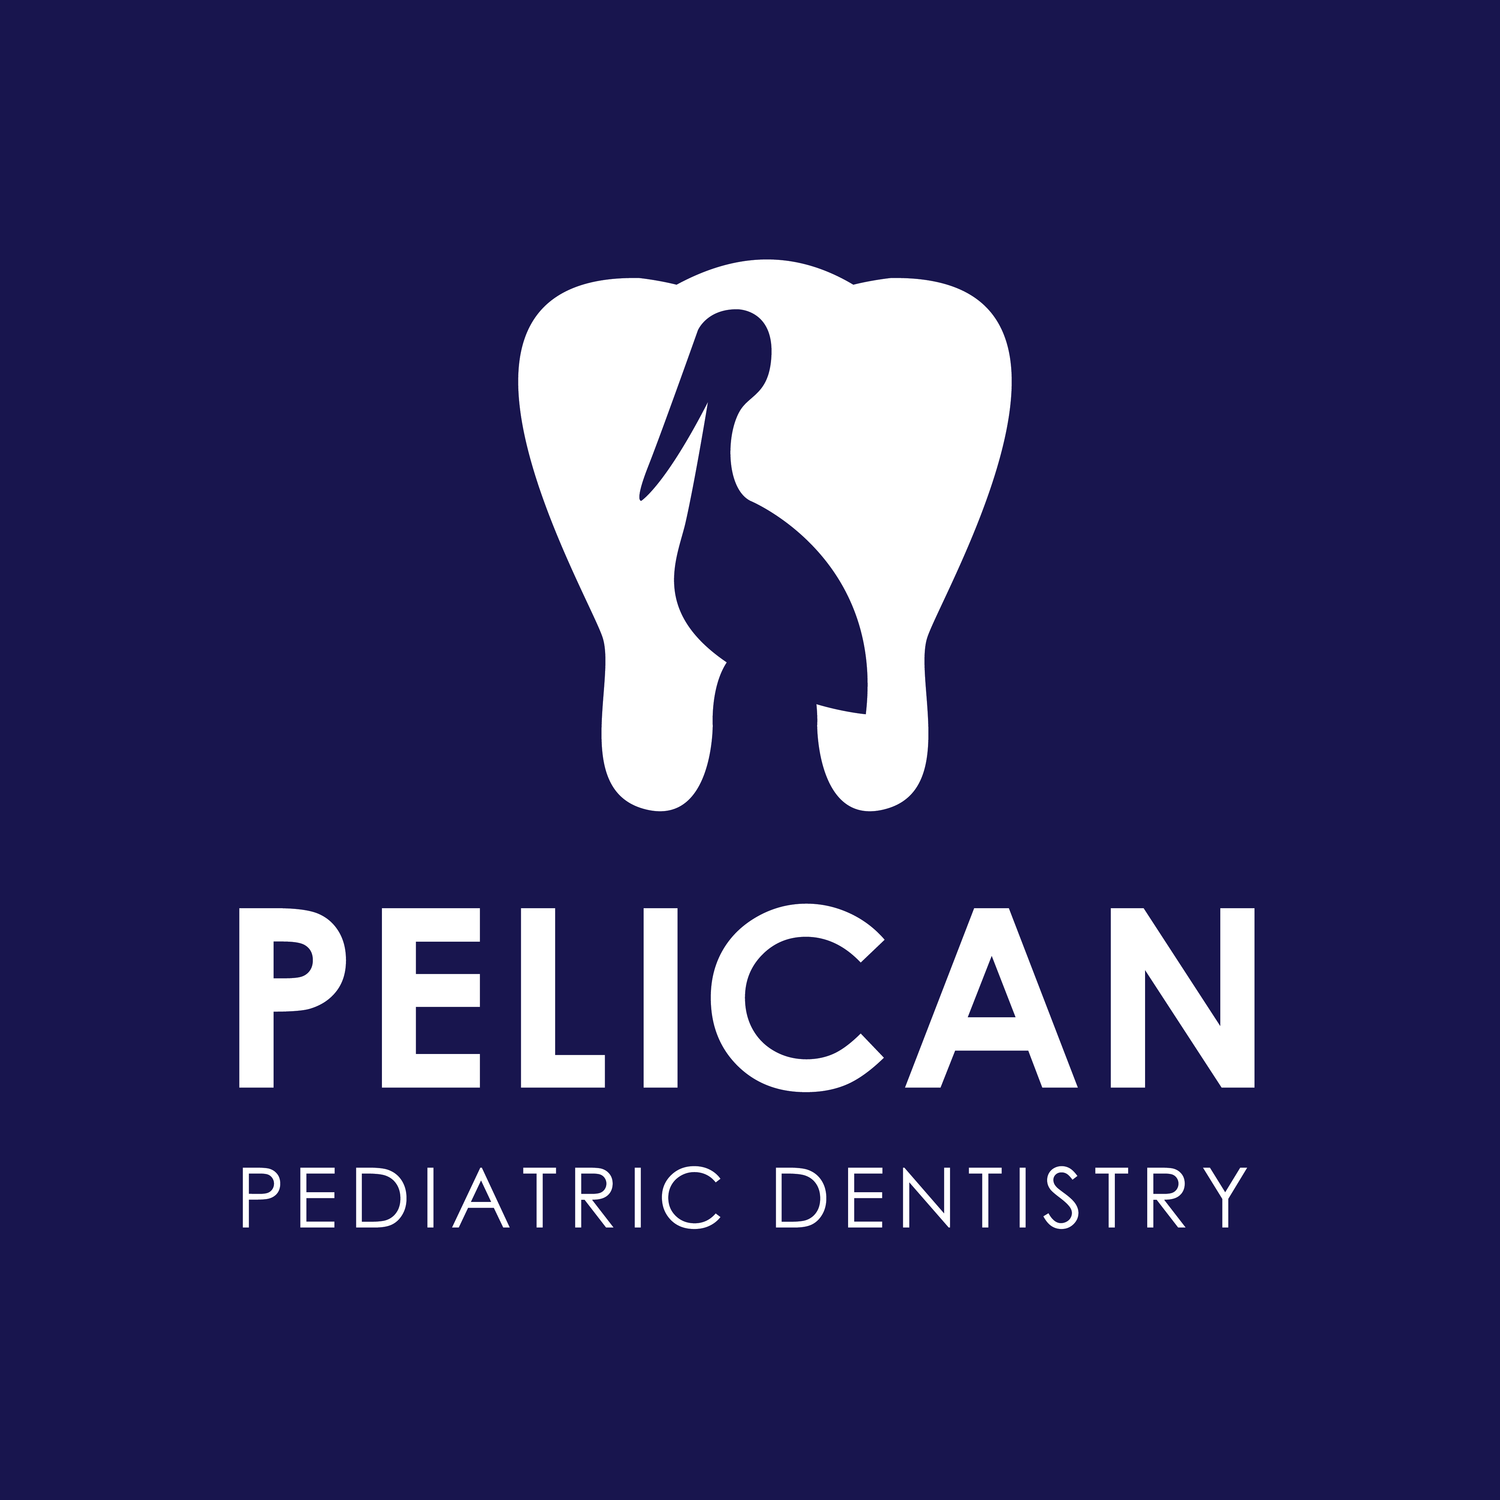 Pelican Pediatric Dentistry